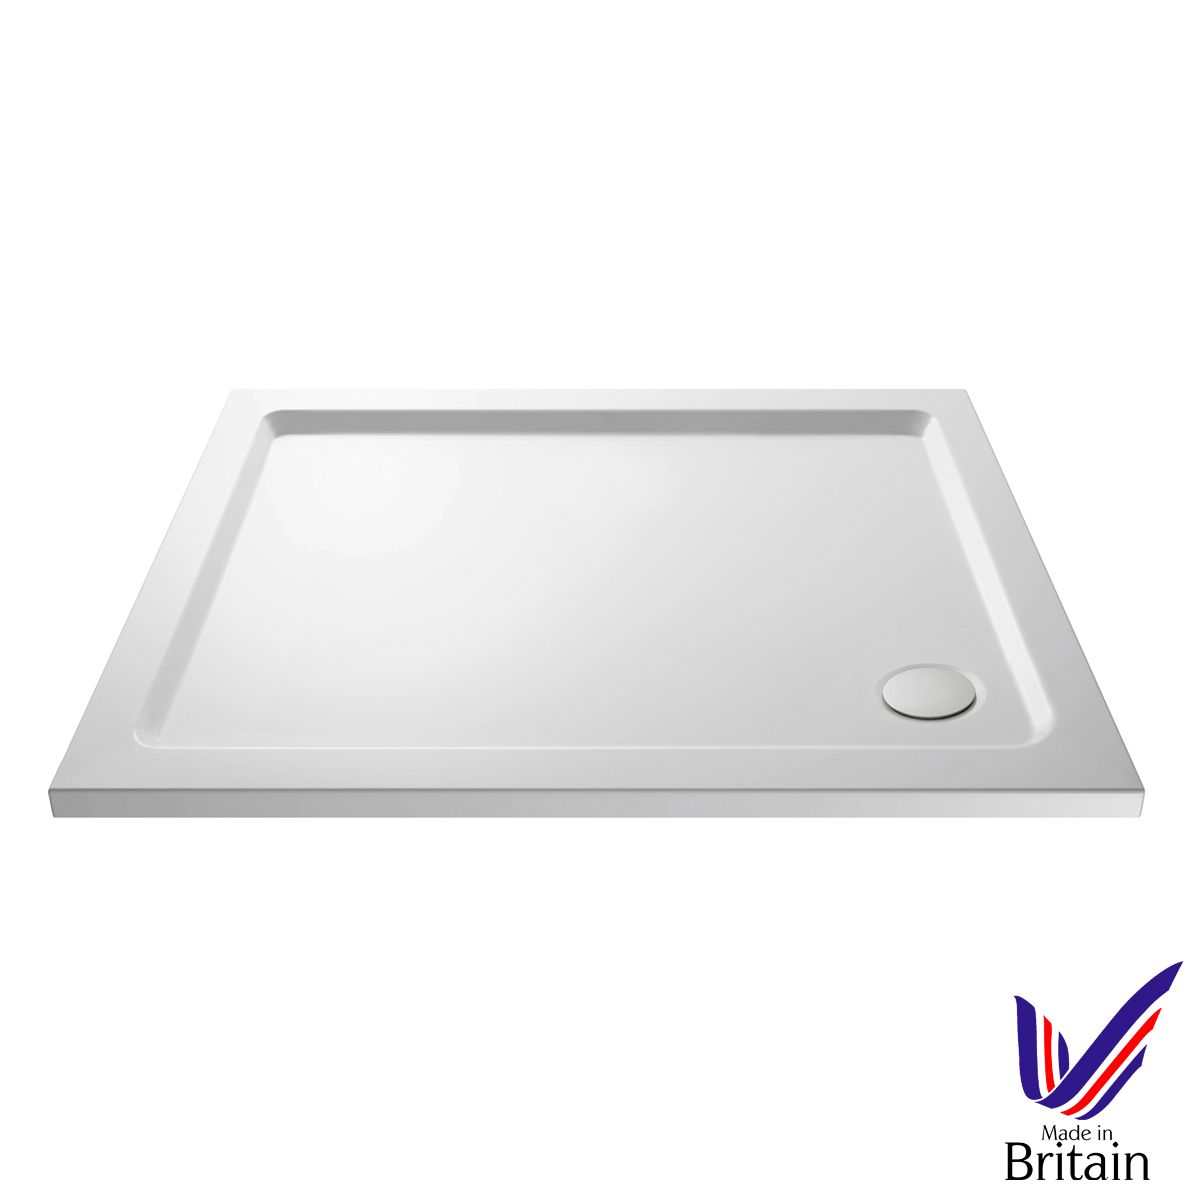 1200 x 760 Shower Tray Rectangular Low Profile by Pearlstone